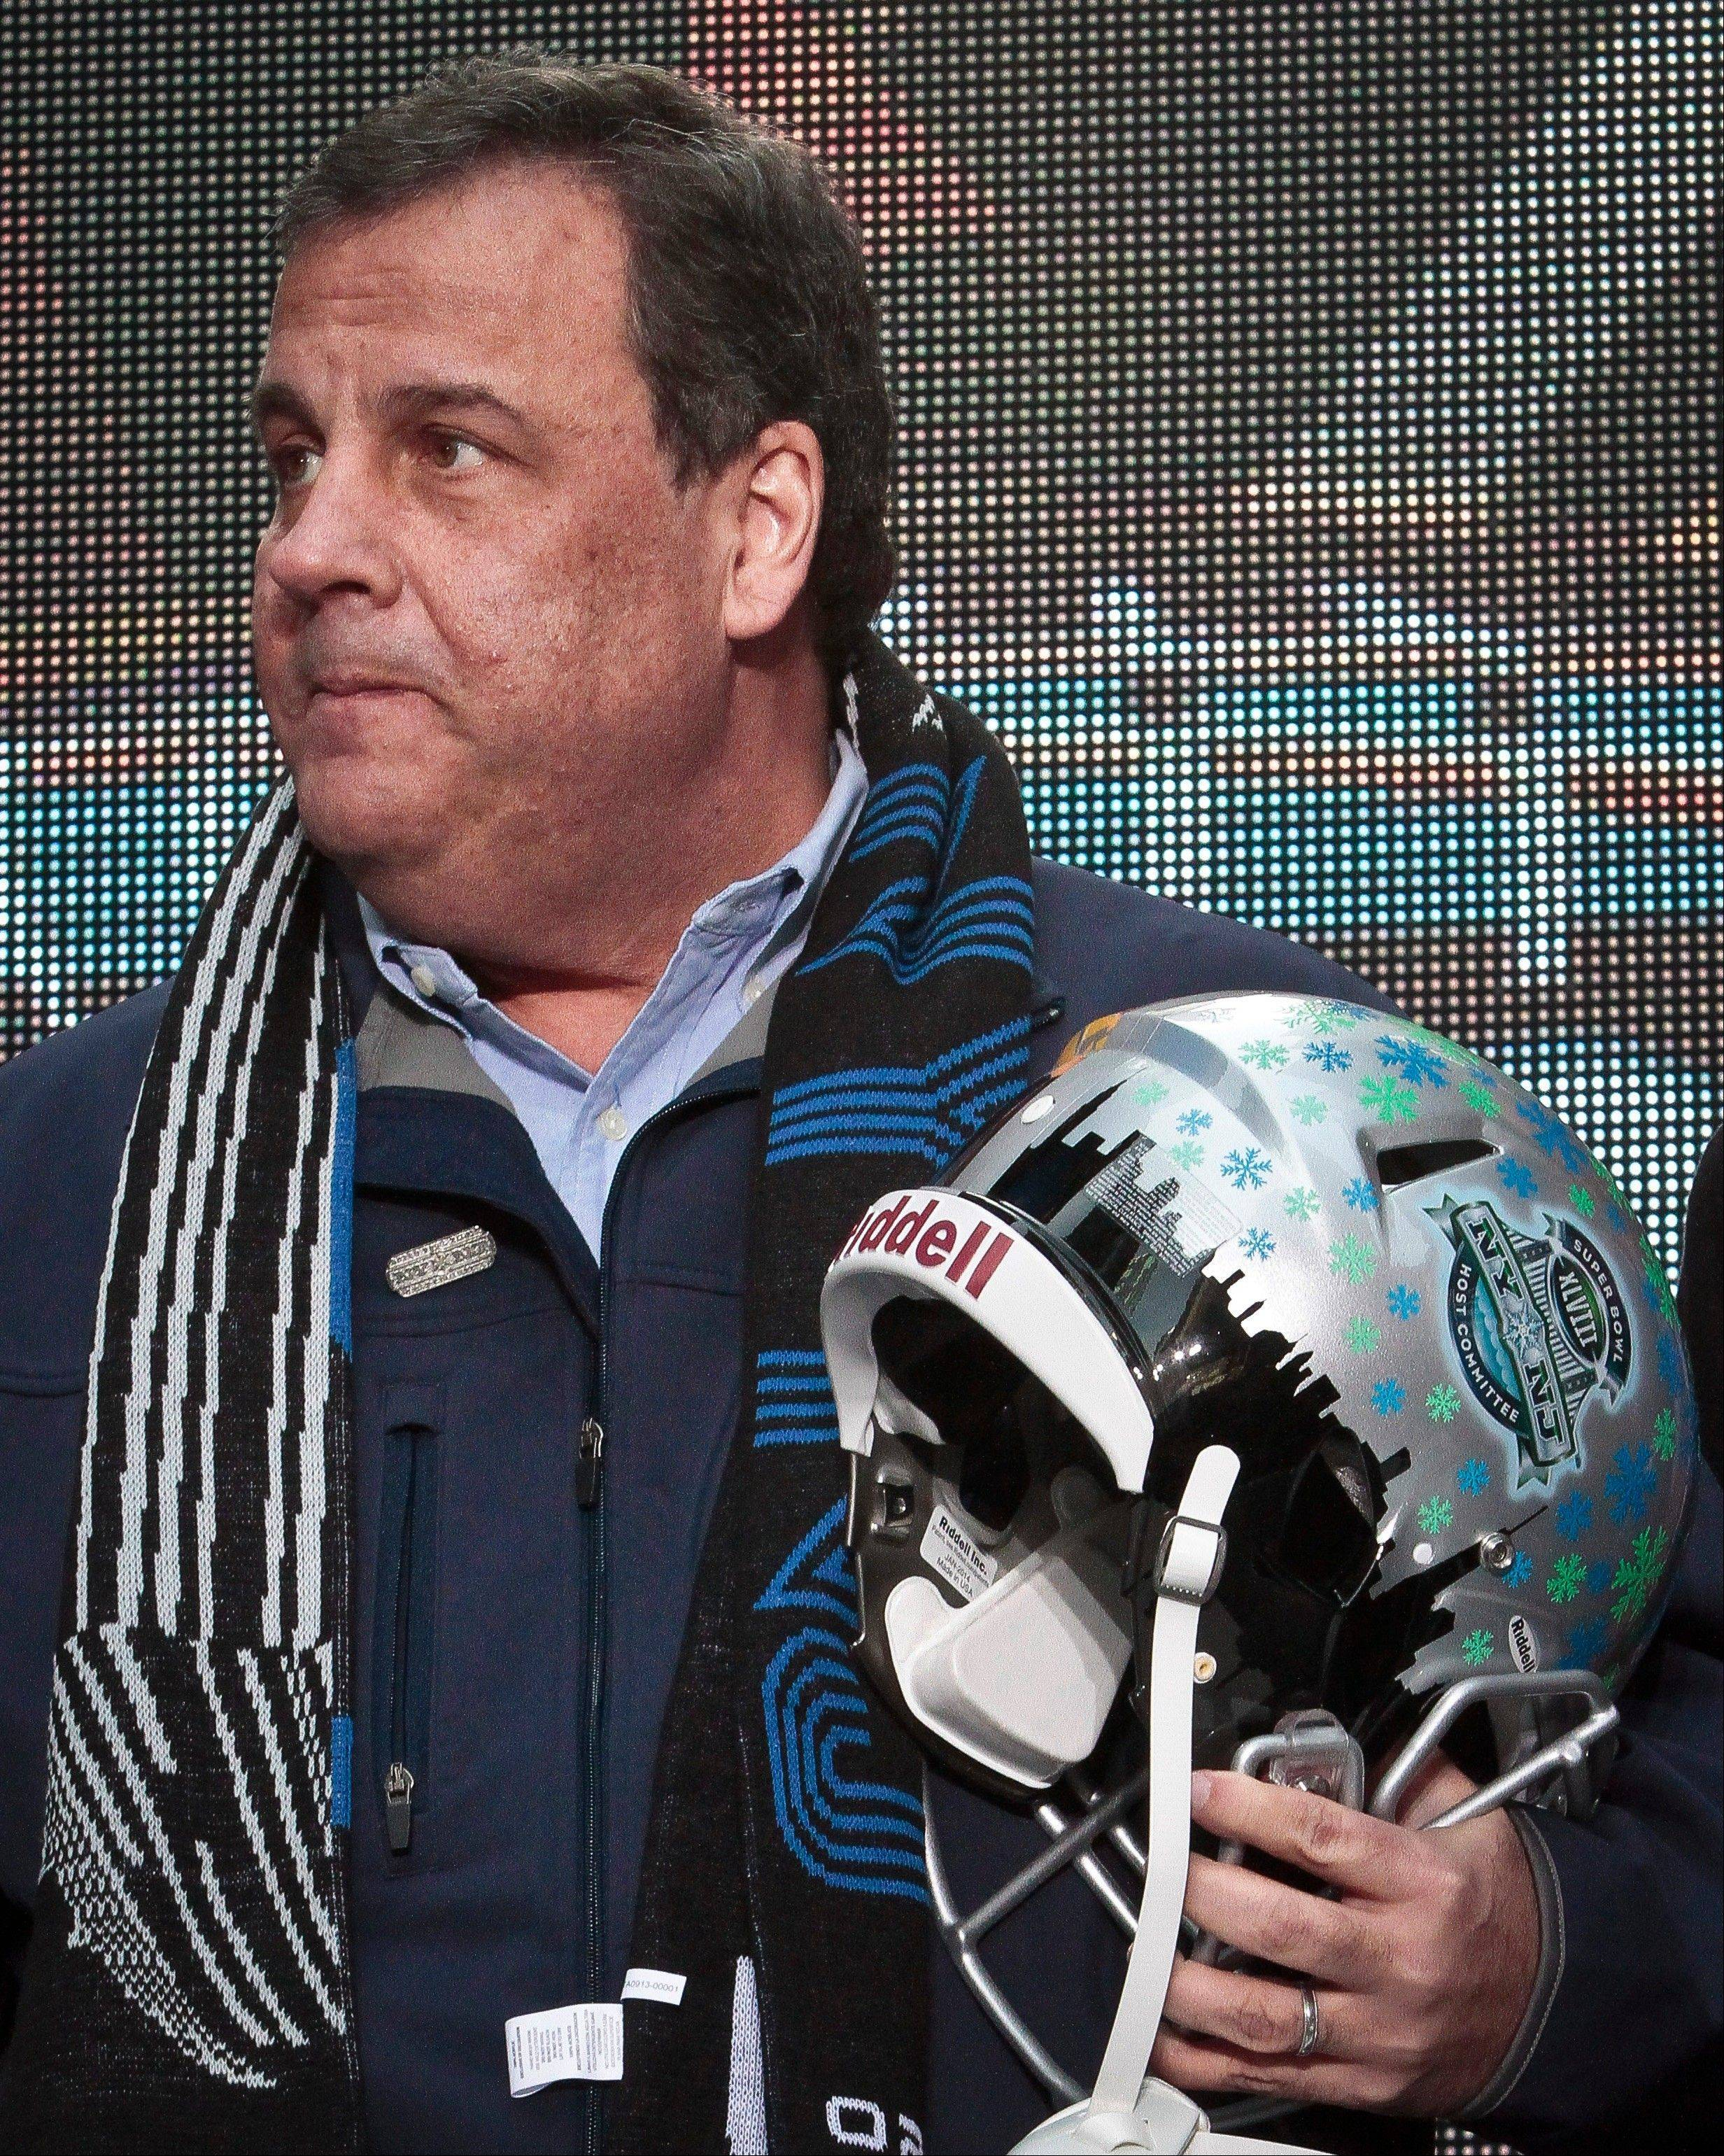 New Jersey Gov. Chris Christie holds a souvenir football helmet as he leaves after a ceremony to pass official hosting duties of next year's Super Bowl to representatives from Arizona on Saturday in New York. Fellow Republicans are assessing the damage of new allegations that Gov. Christie knew about a traffic-blocking operation orchestrated by top aides.